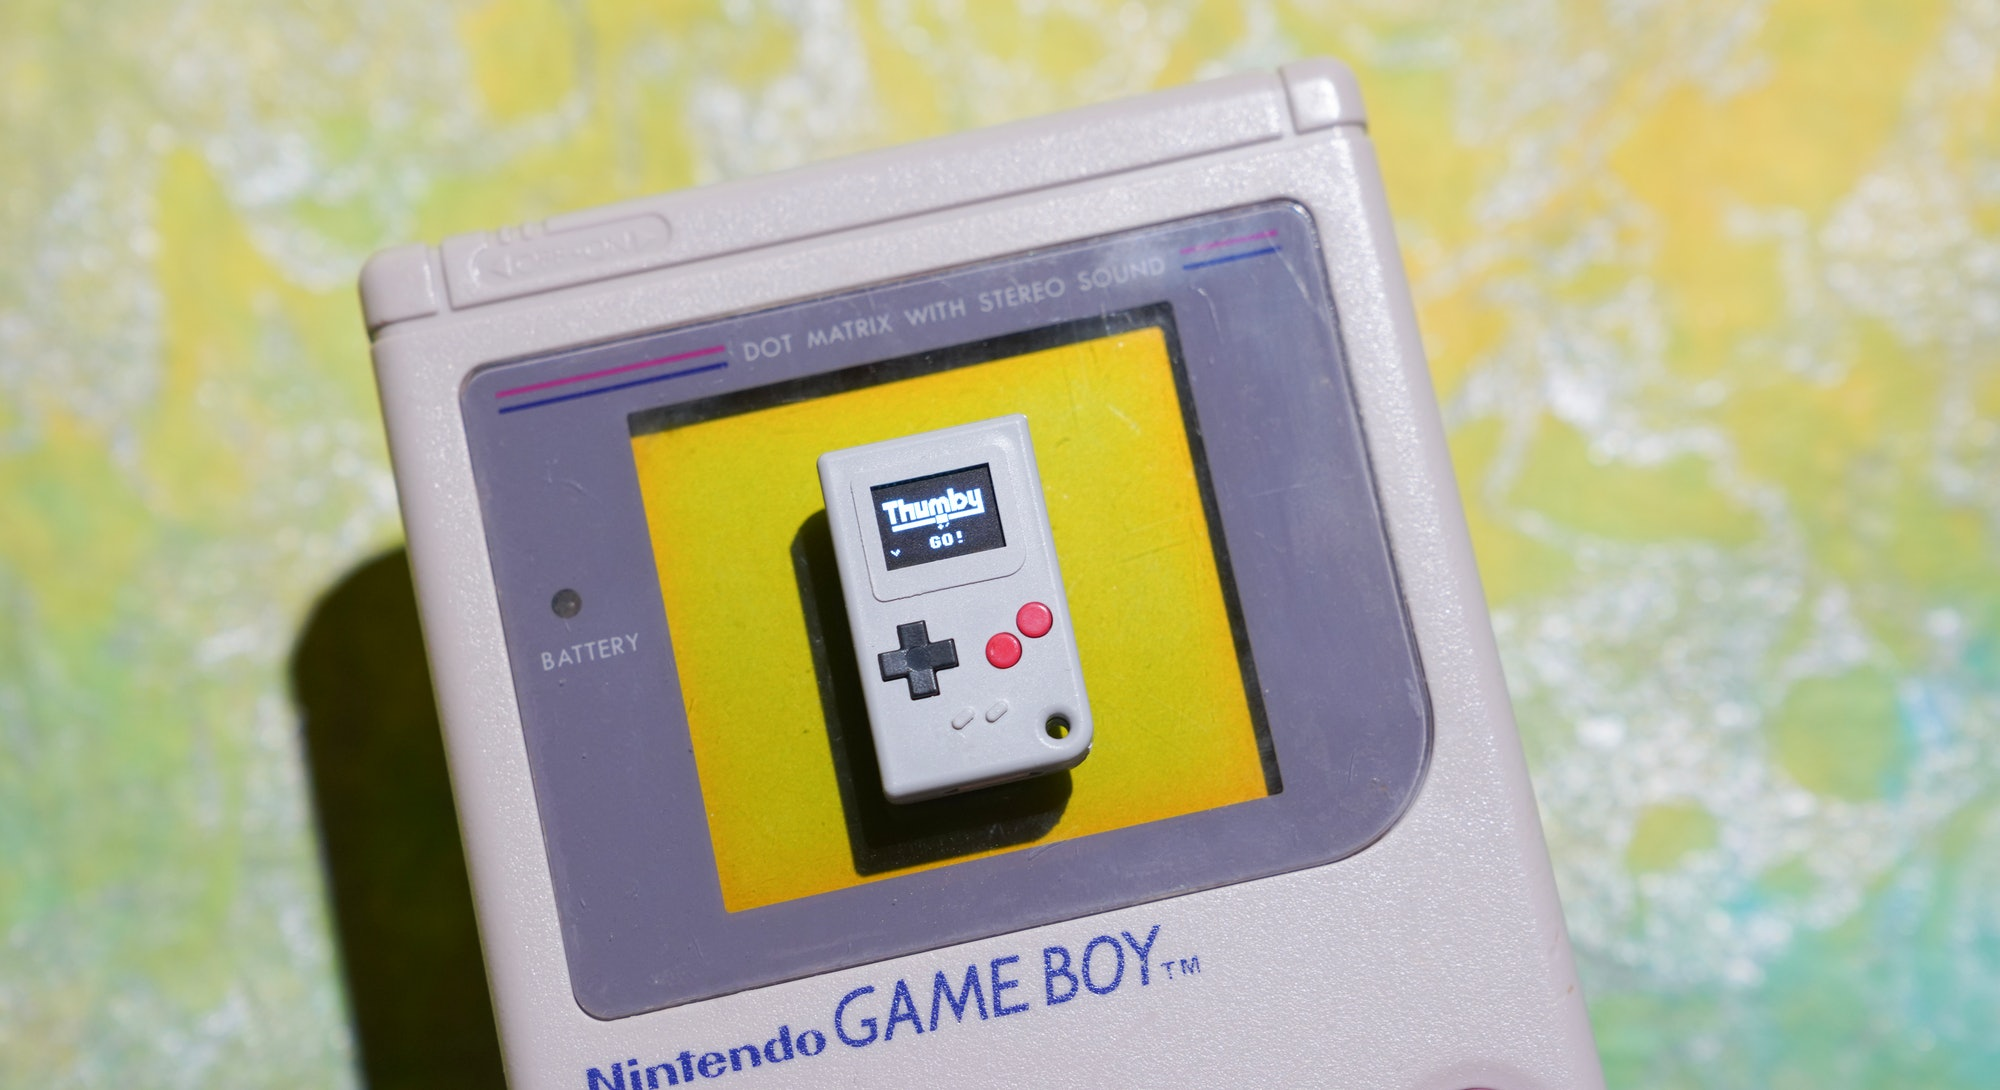 Tiny Circuits Thumby tiny Game Boy review